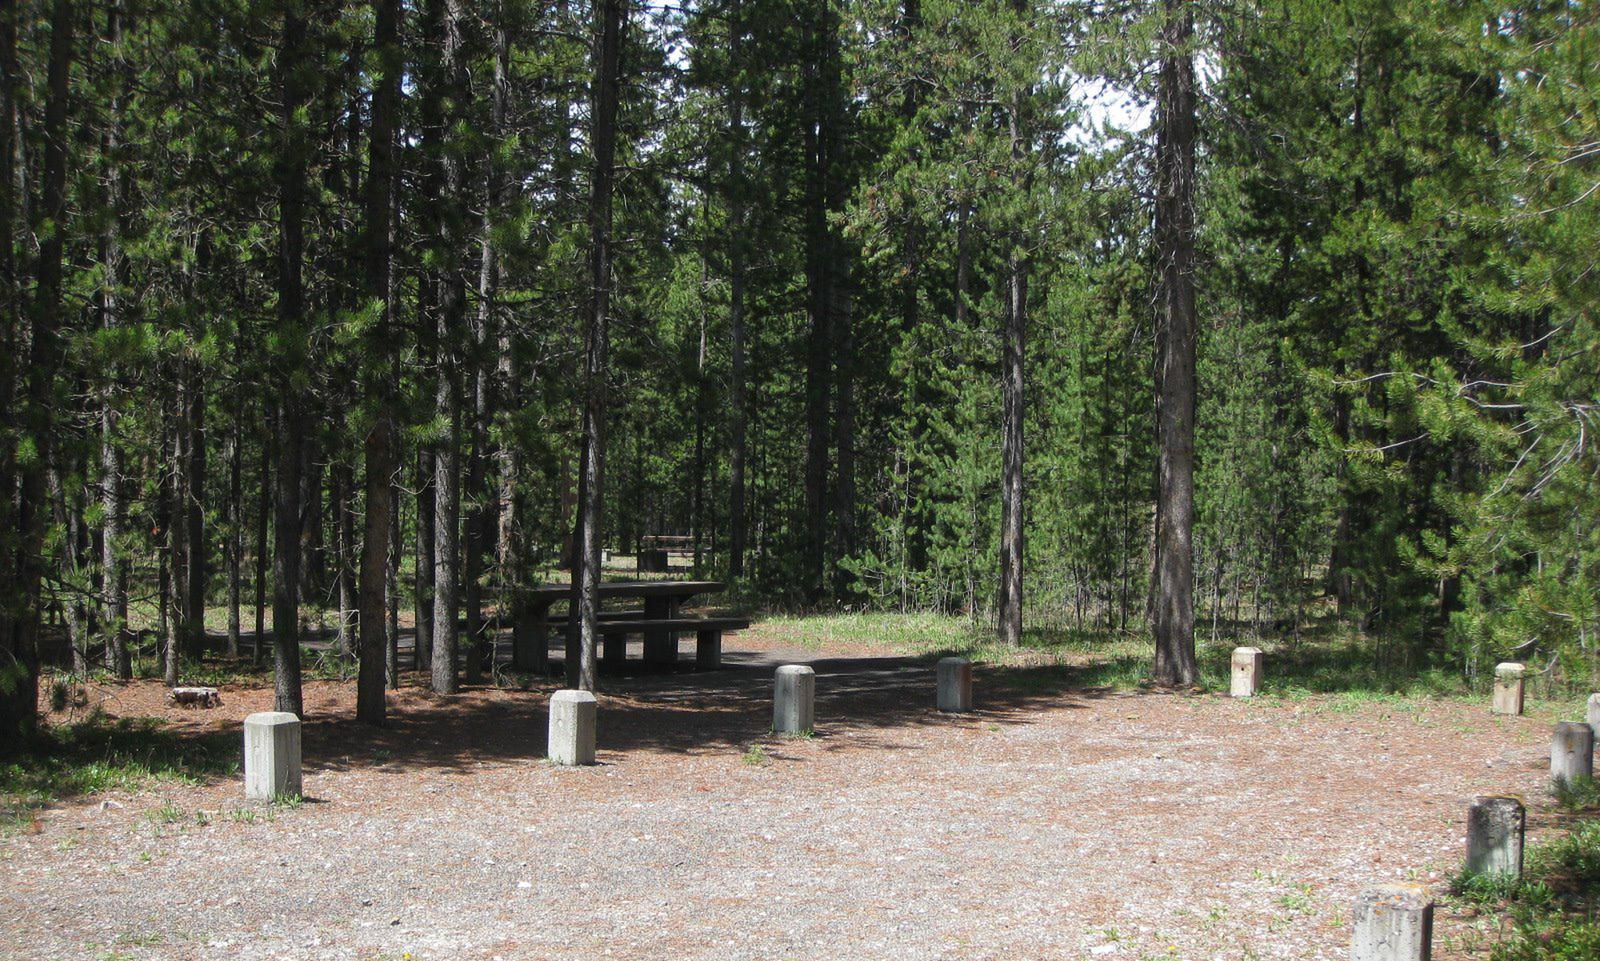 Site C2, surrounded by pine trees, picnic table & fire ringSite C2